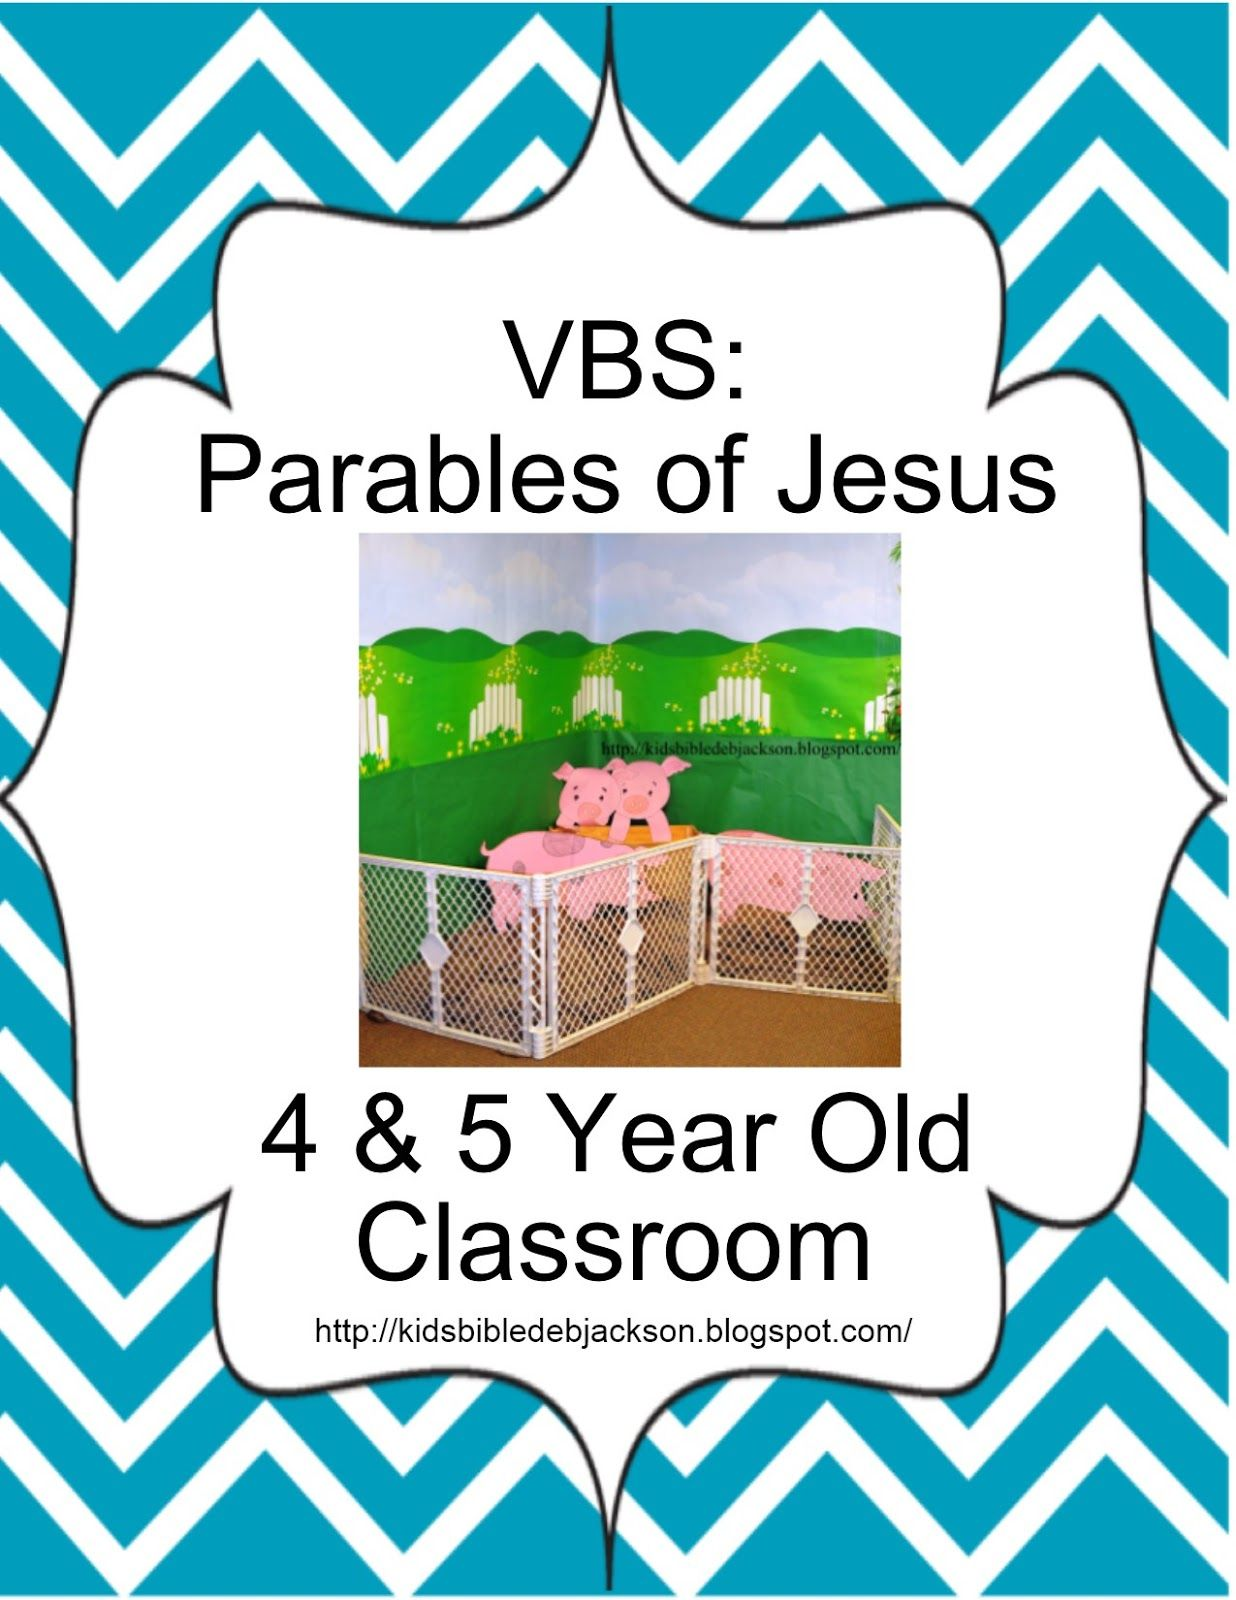 Parables of Jesus VBS: Decorating-Glanced through this ...